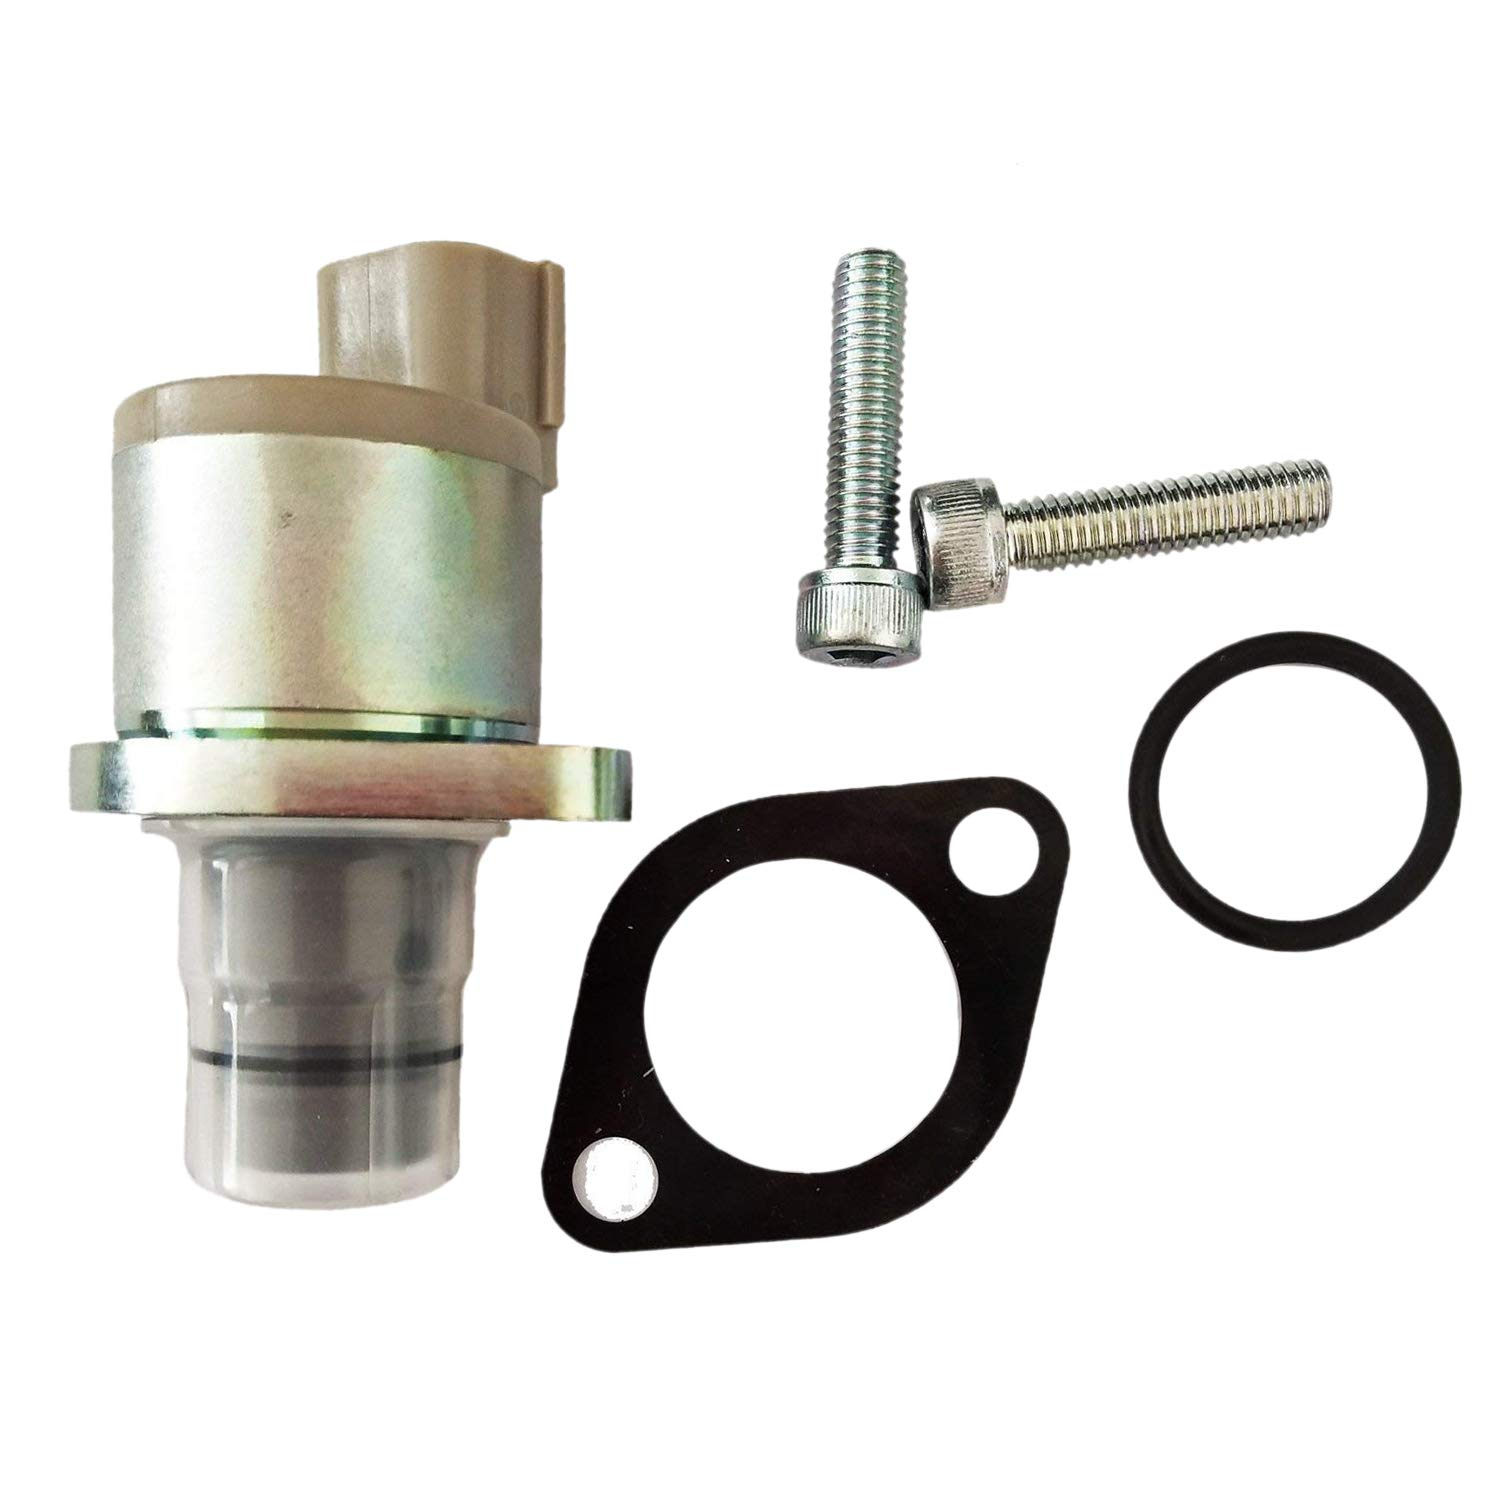 TOOGOO Fuel Pump Suction Control Valve SCV metering Valve one-Way sequential Valve Oil Pump Control Valve applies to: Mitsubishi Nissan Mazda Ford Engine 294200-0360 181229